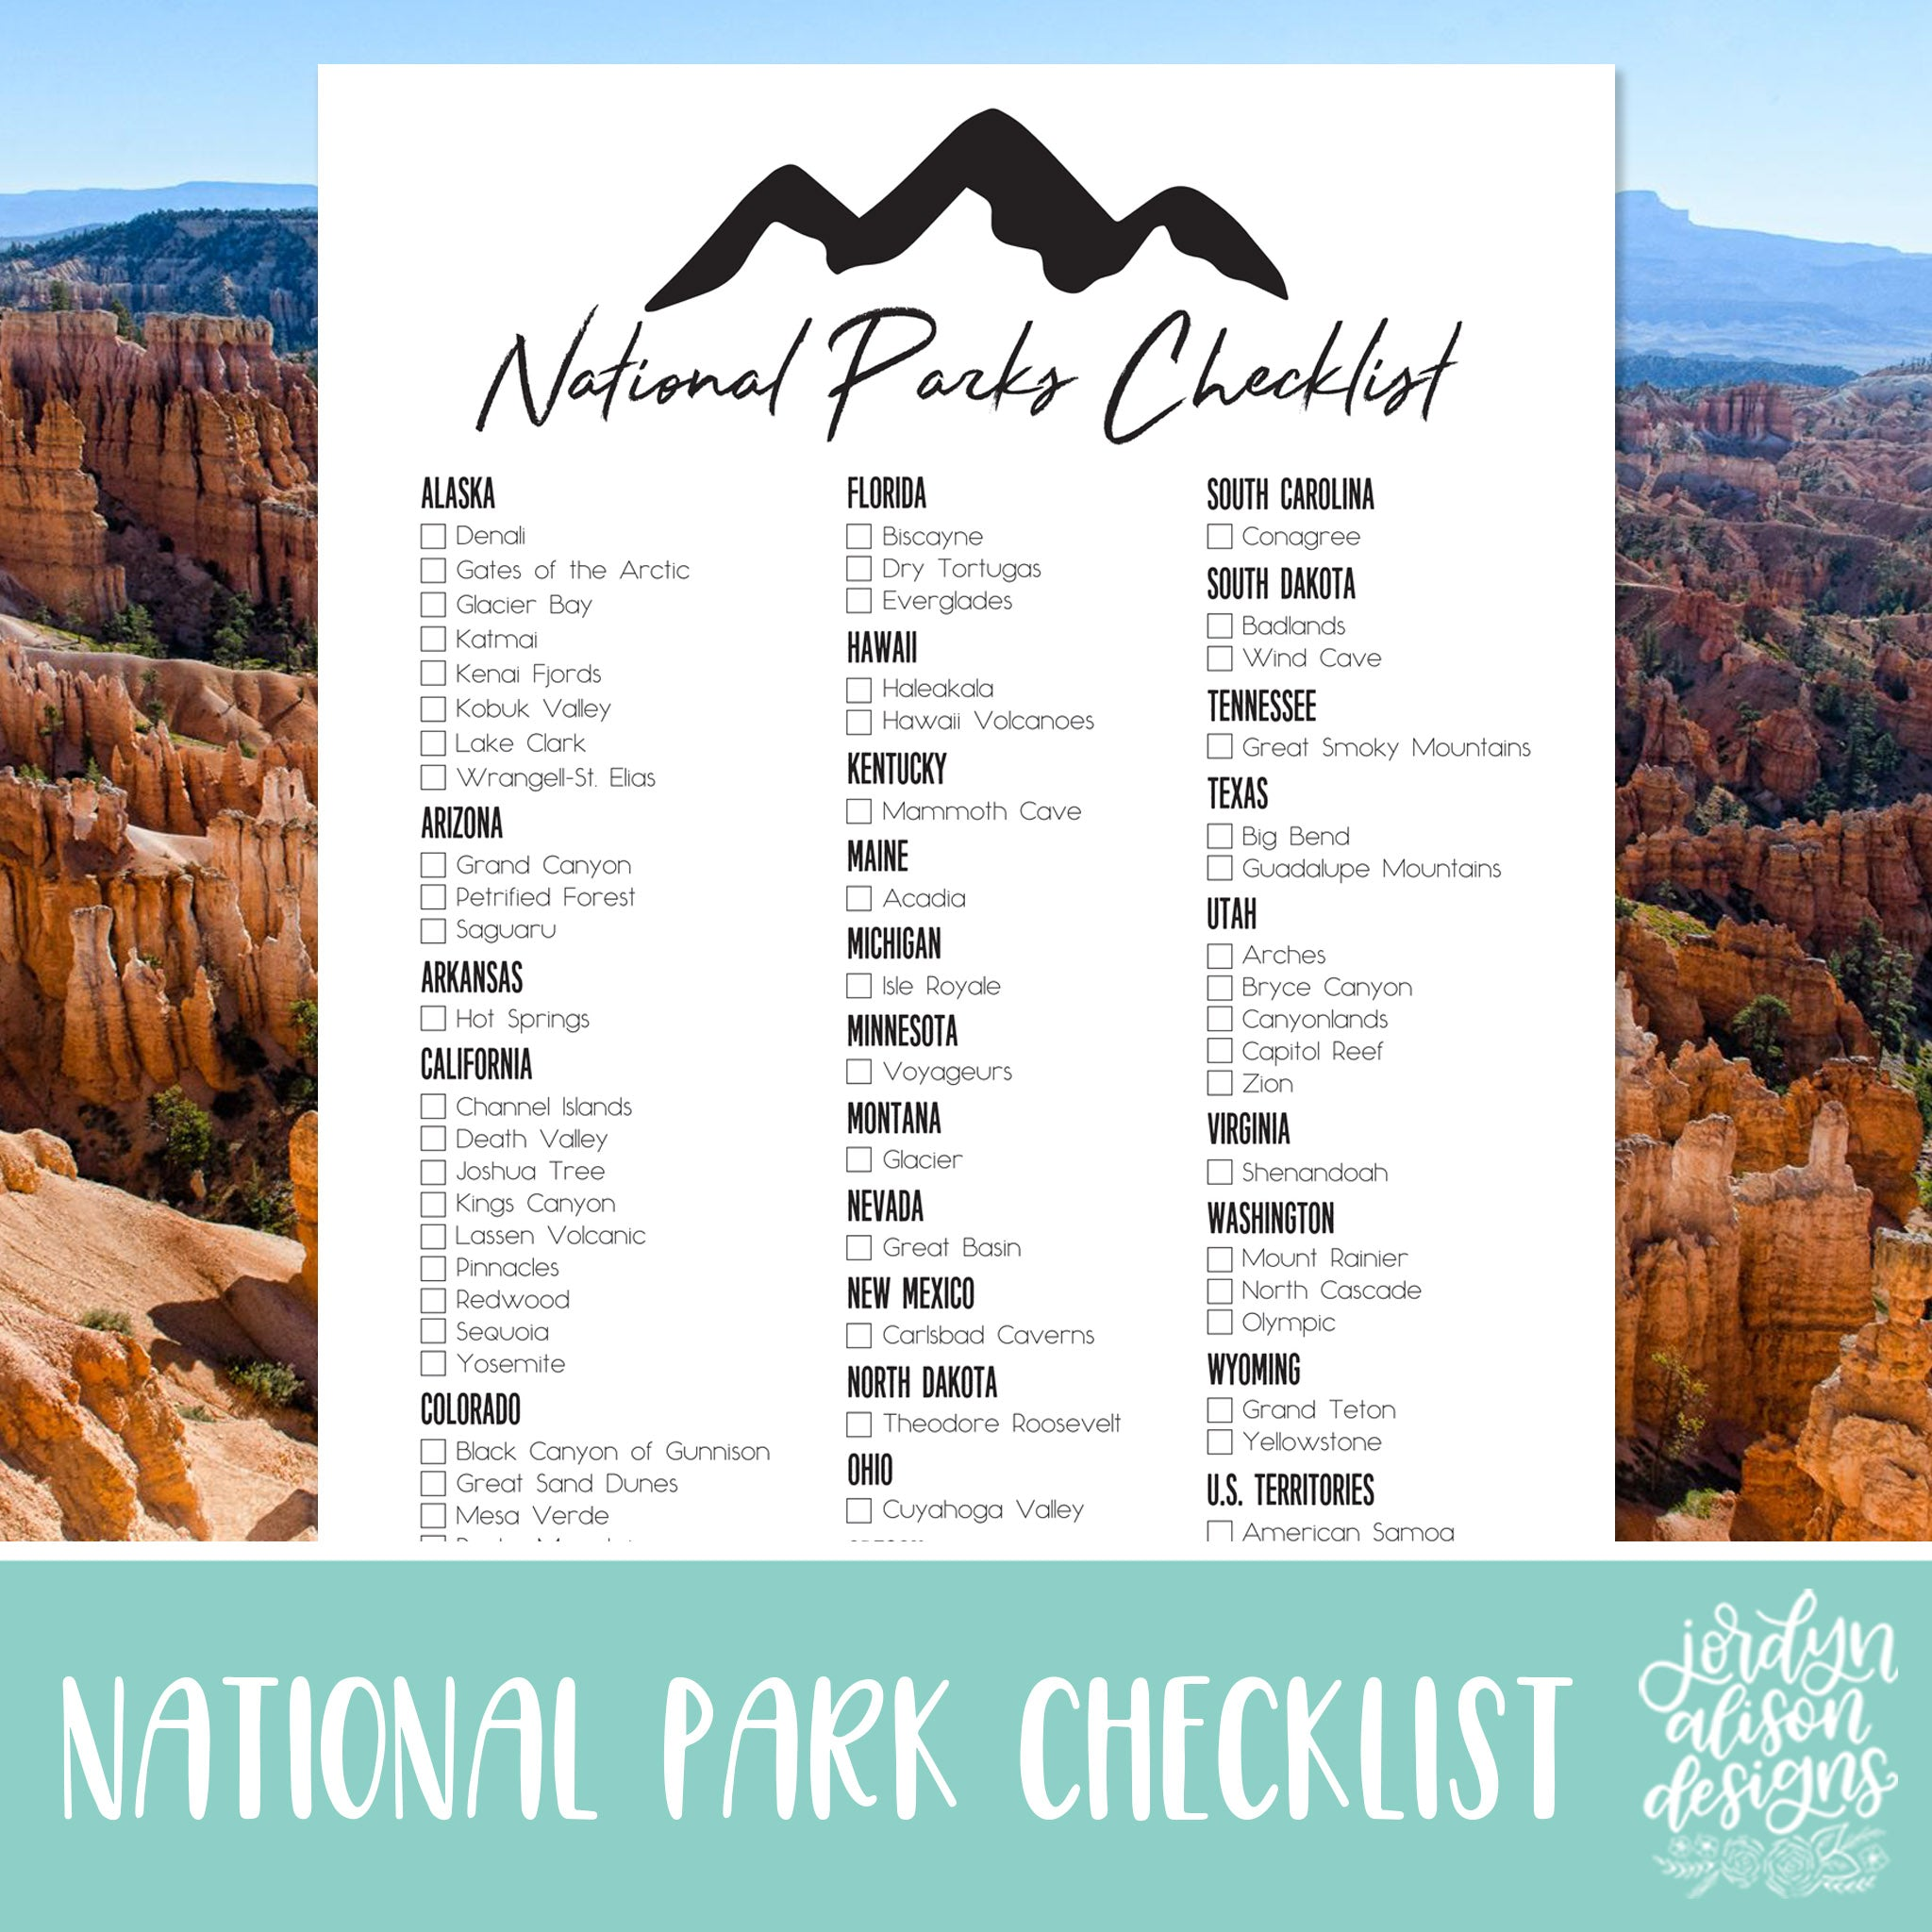 photo about Printable National Park Checklist identified as Nationwide Park Listing JordynAlisonDesigns